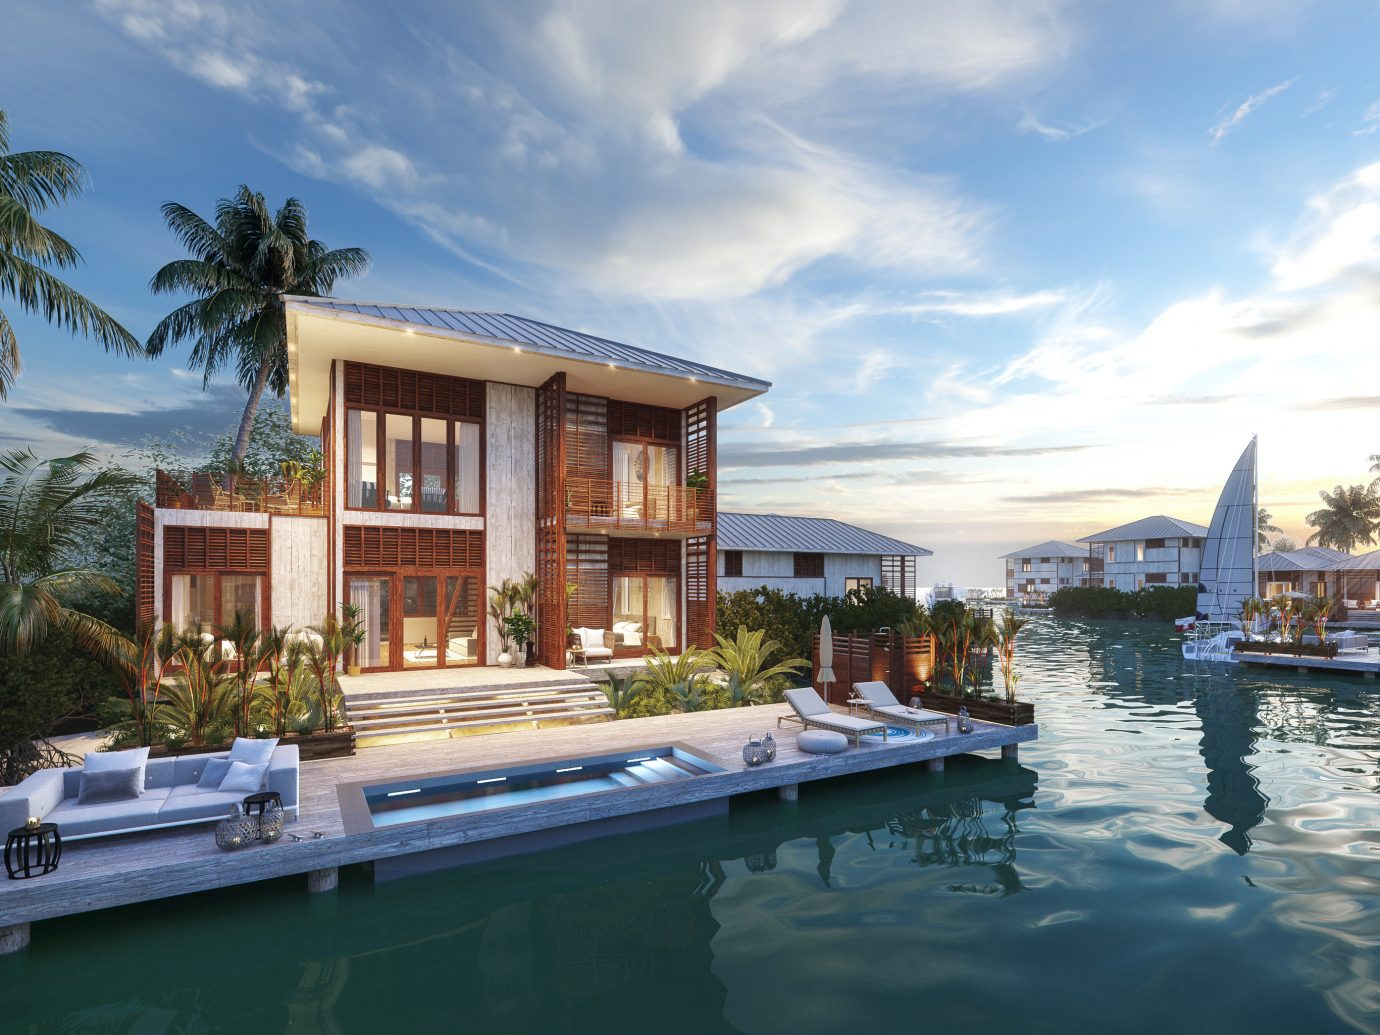 Itz'Ana Resort And Residences In Belize